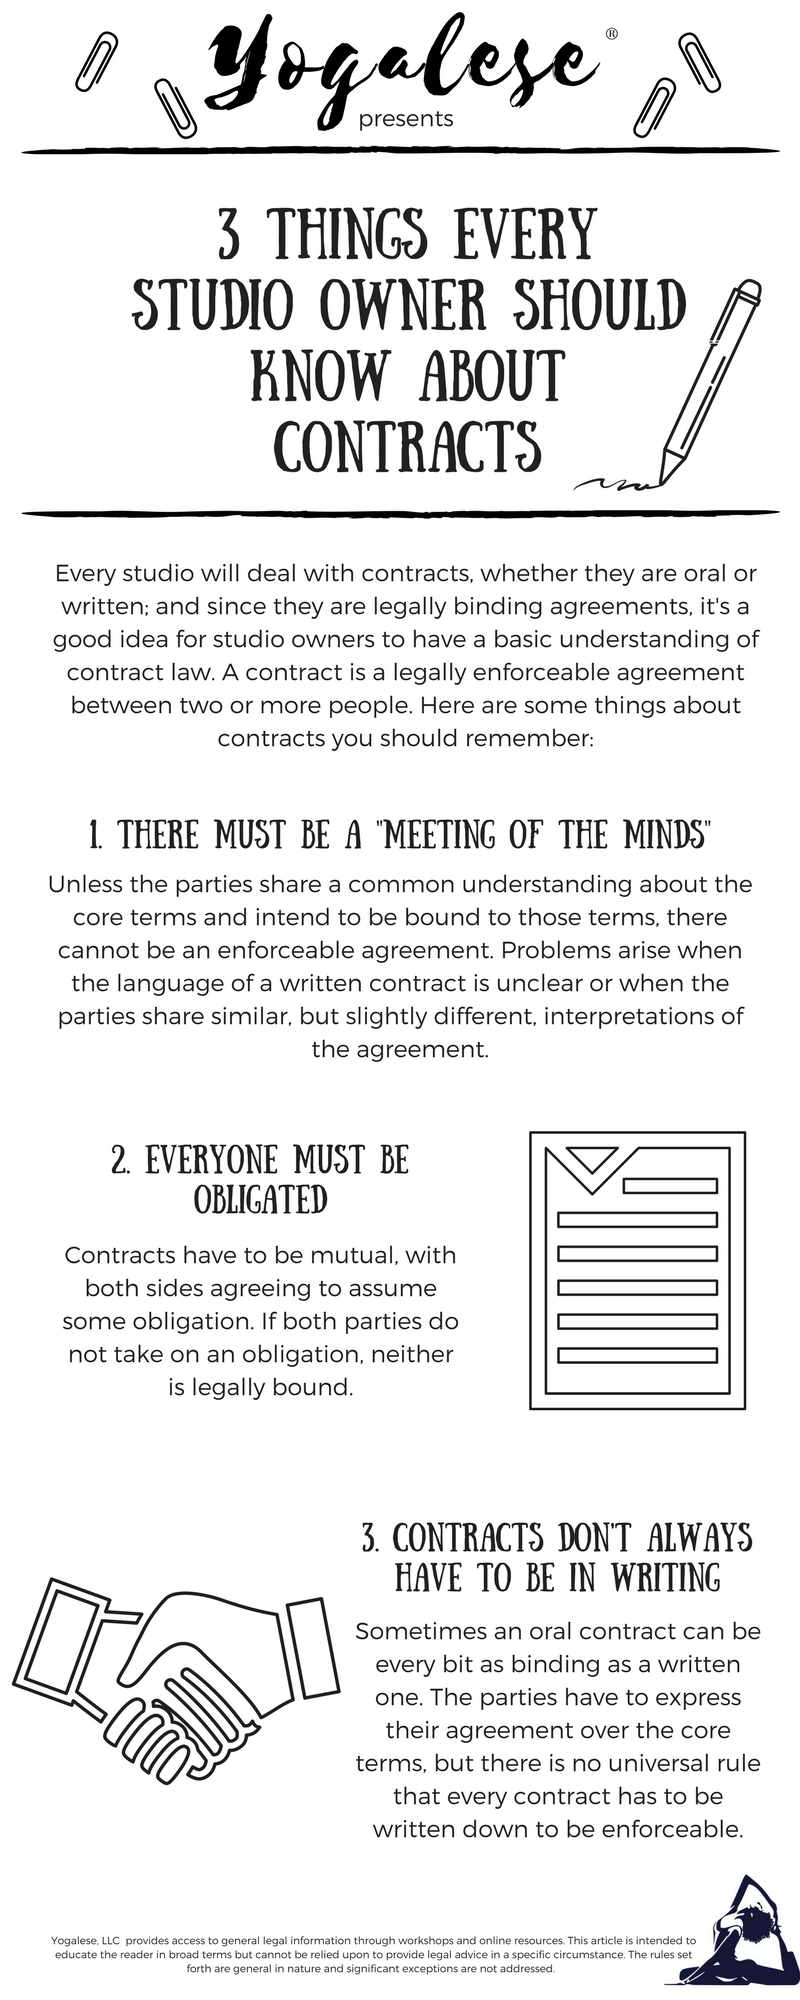 Every studio will deal with contracts, whether they are oral or written; and since they are legally binding agreements, it's a good idea for studio owners to have a basic understanding of contract law. A contract is a legally enforceable agreement between two or more people. Here are some things about contracts you should remember: 1. Unless the parties share a common understanding about the core terms and intend to be bound to those terms, there cannot be an enforceable agreement. Problems arise when the language of a written contract is unclear or when the parties share similar, but slightly different, interpretations of the agreement. 2. Contracts have to be mutual, with both sides agreeing to assume some obligation. If both parties do not take on an obligation, neither is legally bound. 3. Sometimes an oral contract can be every bit as binding as a written one. The parties have to express their agreement over the core terms, but there is no universal rule that every contract has to be written down to be enforceable.